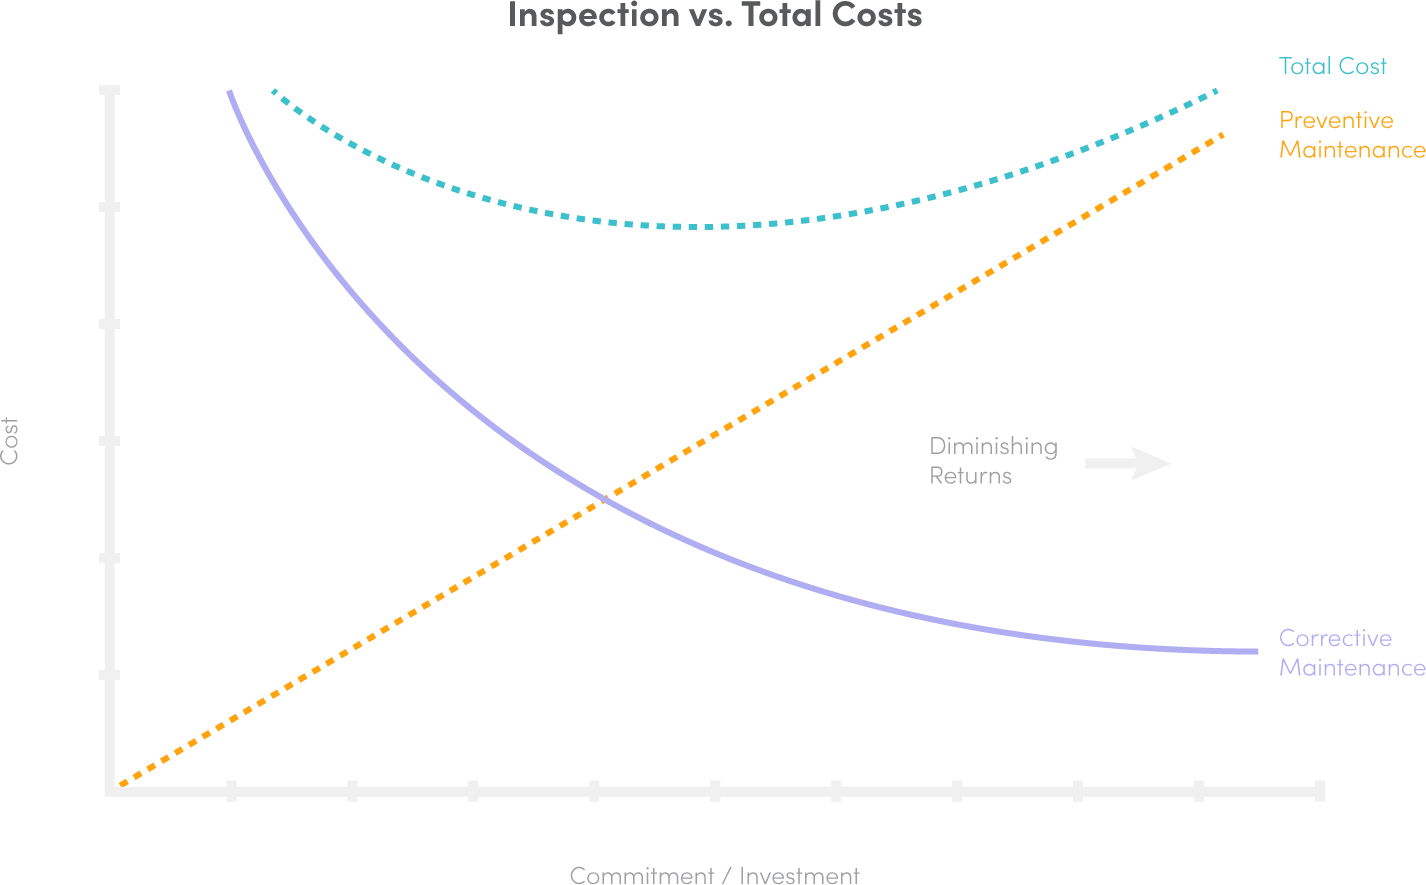 inspections-vs-total-cost